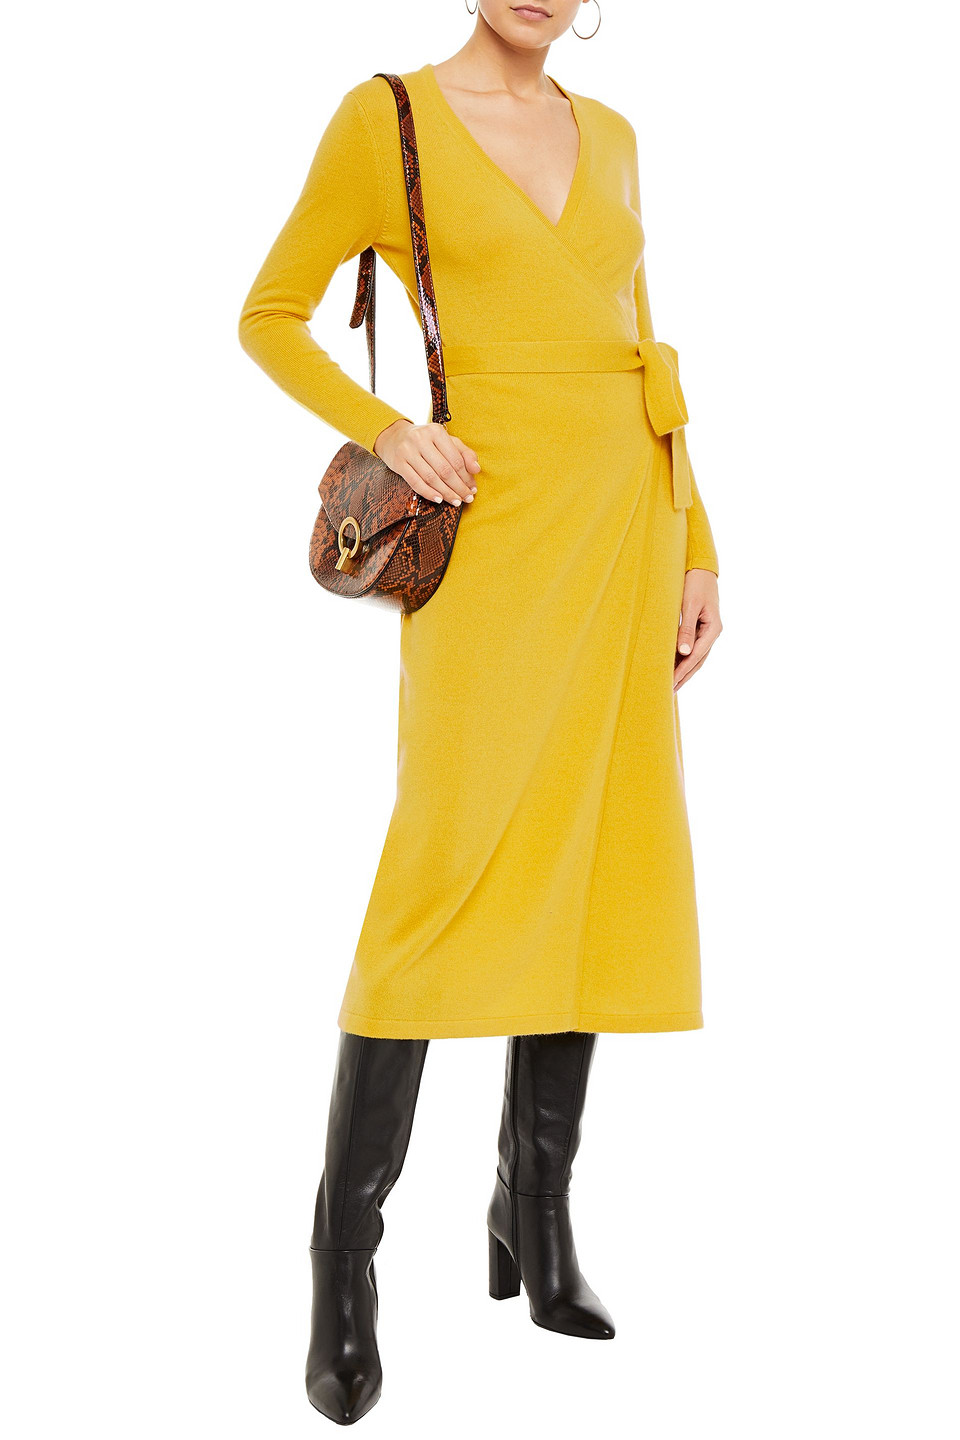 Diane Von Furstenberg   Diane Von Furstenberg Woman Astrid Wool And Cashmere-blend Midi Wrap Dress Mustard   Clouty